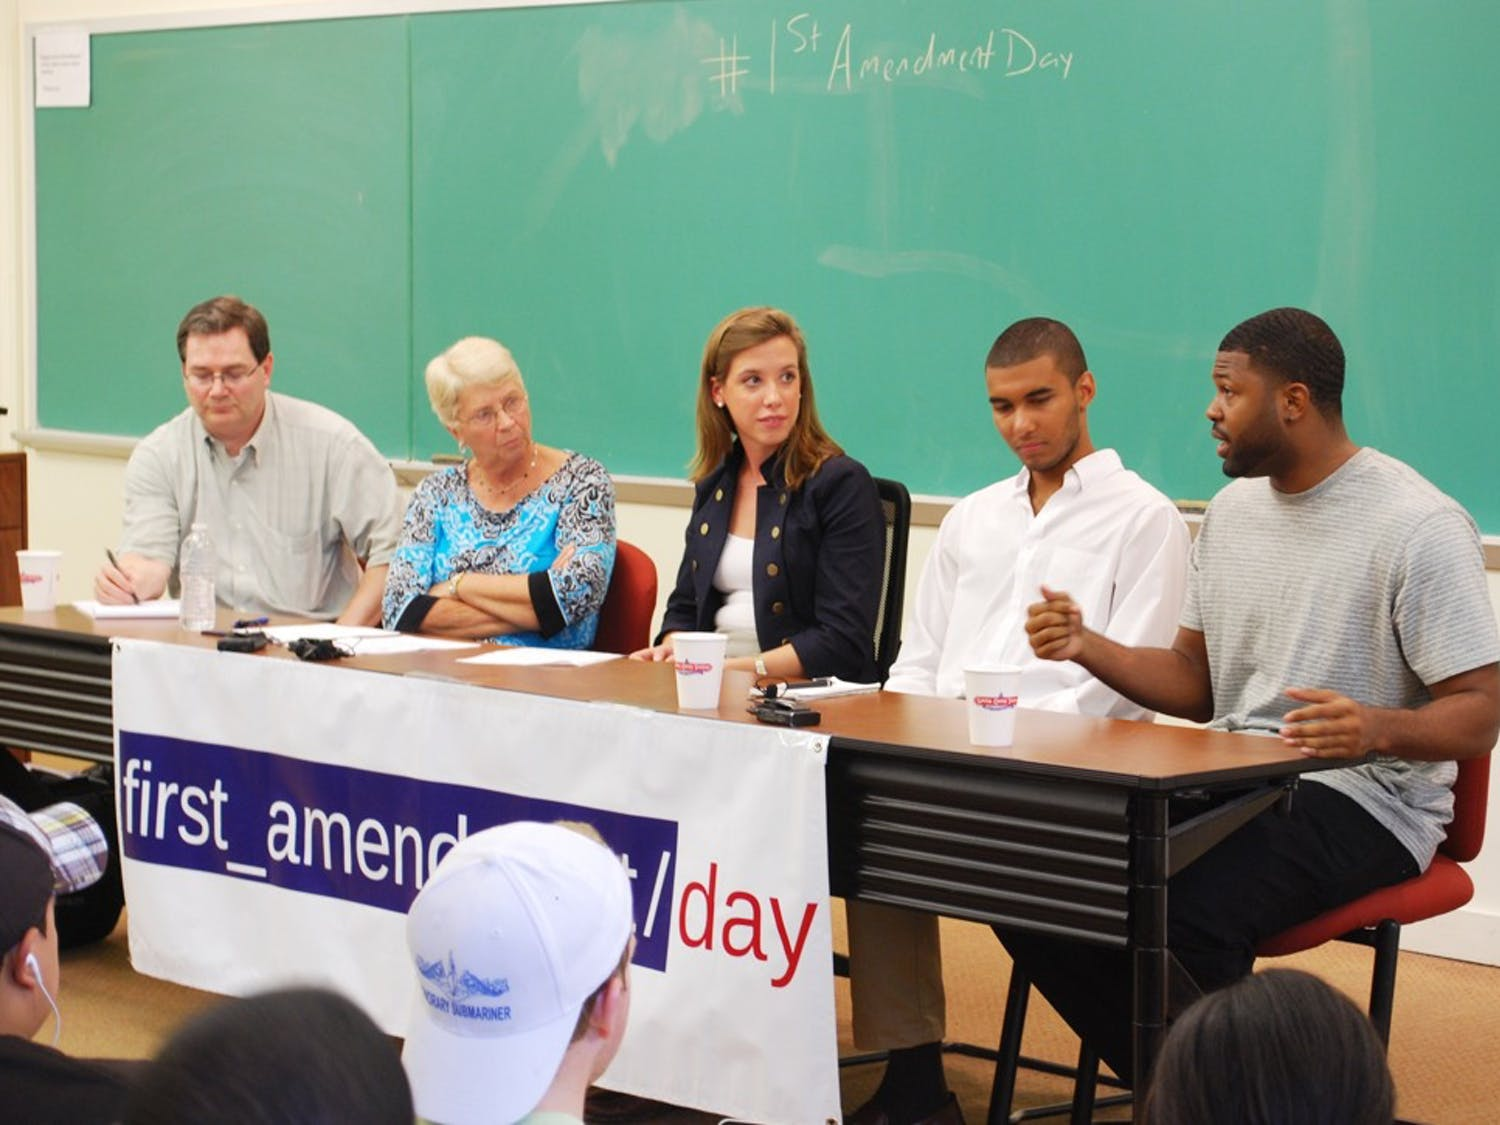 On Tuesday, September 27, UNC celebrated First Ammendment Day by hosting a panel in Carroll 103 to discuss UNC Football, Parking Tickets, FERPA, and Twitter. The Panel consisted of (from left to right in the photos): Dan Kane (News & Observer Investigative Reporter), Dr. Ruth Walden (Prof of Journalism), Jonathan Jones (DTH Senior Writer & Freelancer), and Deunta Williams (Former UNC Safety).The Moderator was Sarah Sessoms